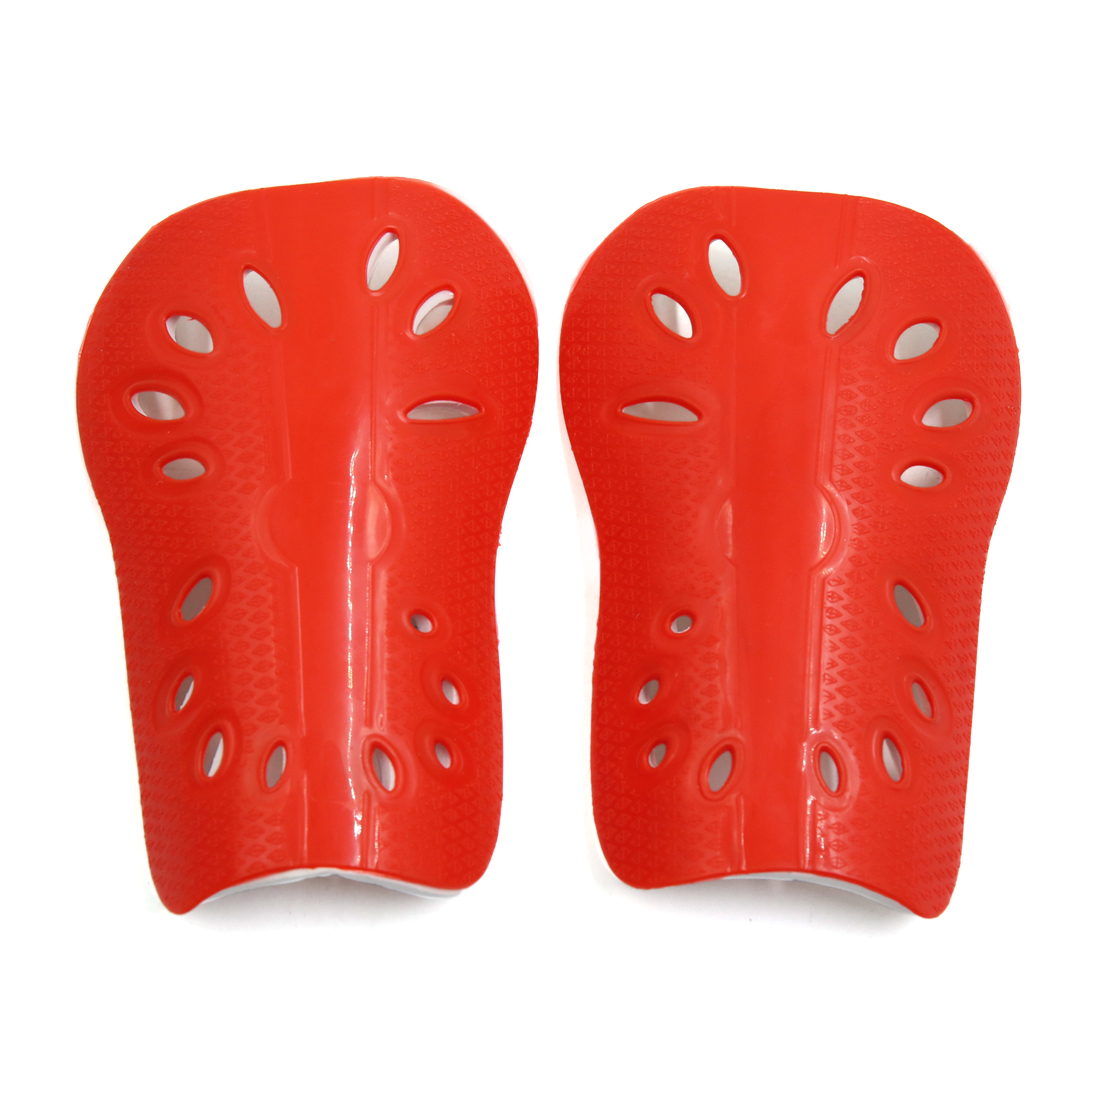 1 Pair Red Kids Football Outdoor Sports Shin Pad Protective Gear Legs Guards